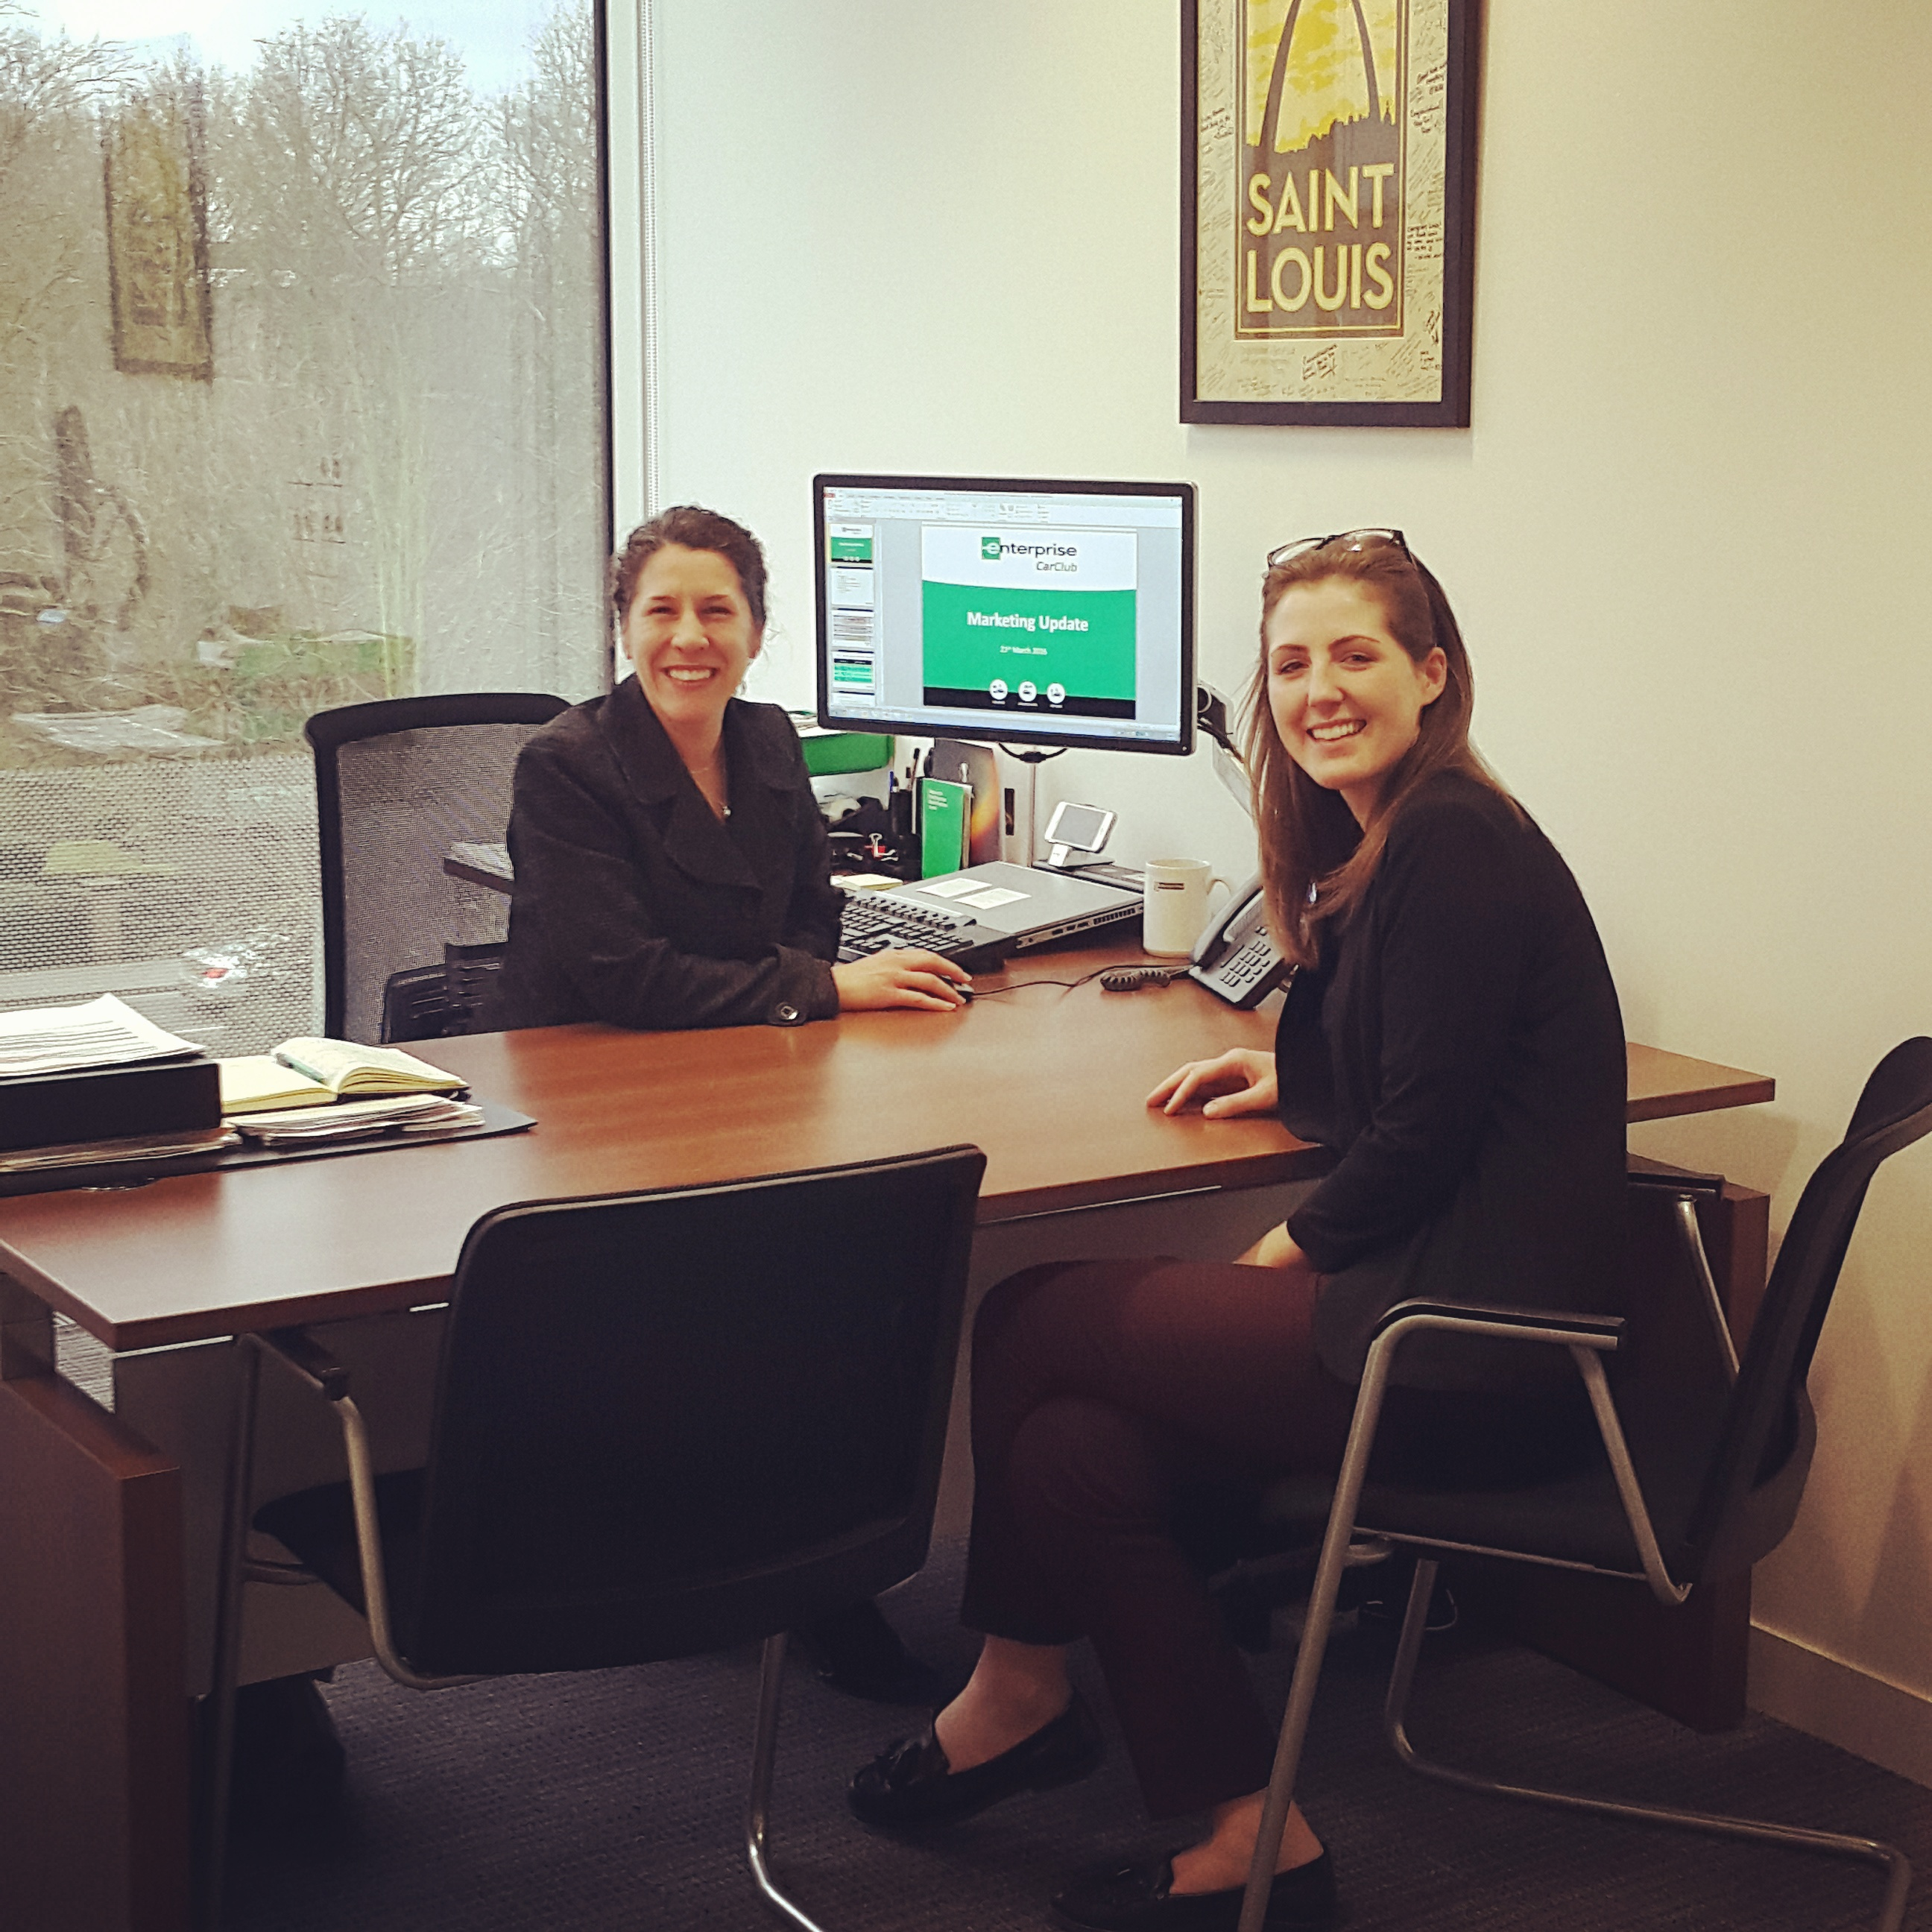 A day in the life of a Marketing Specialist at Enterprise